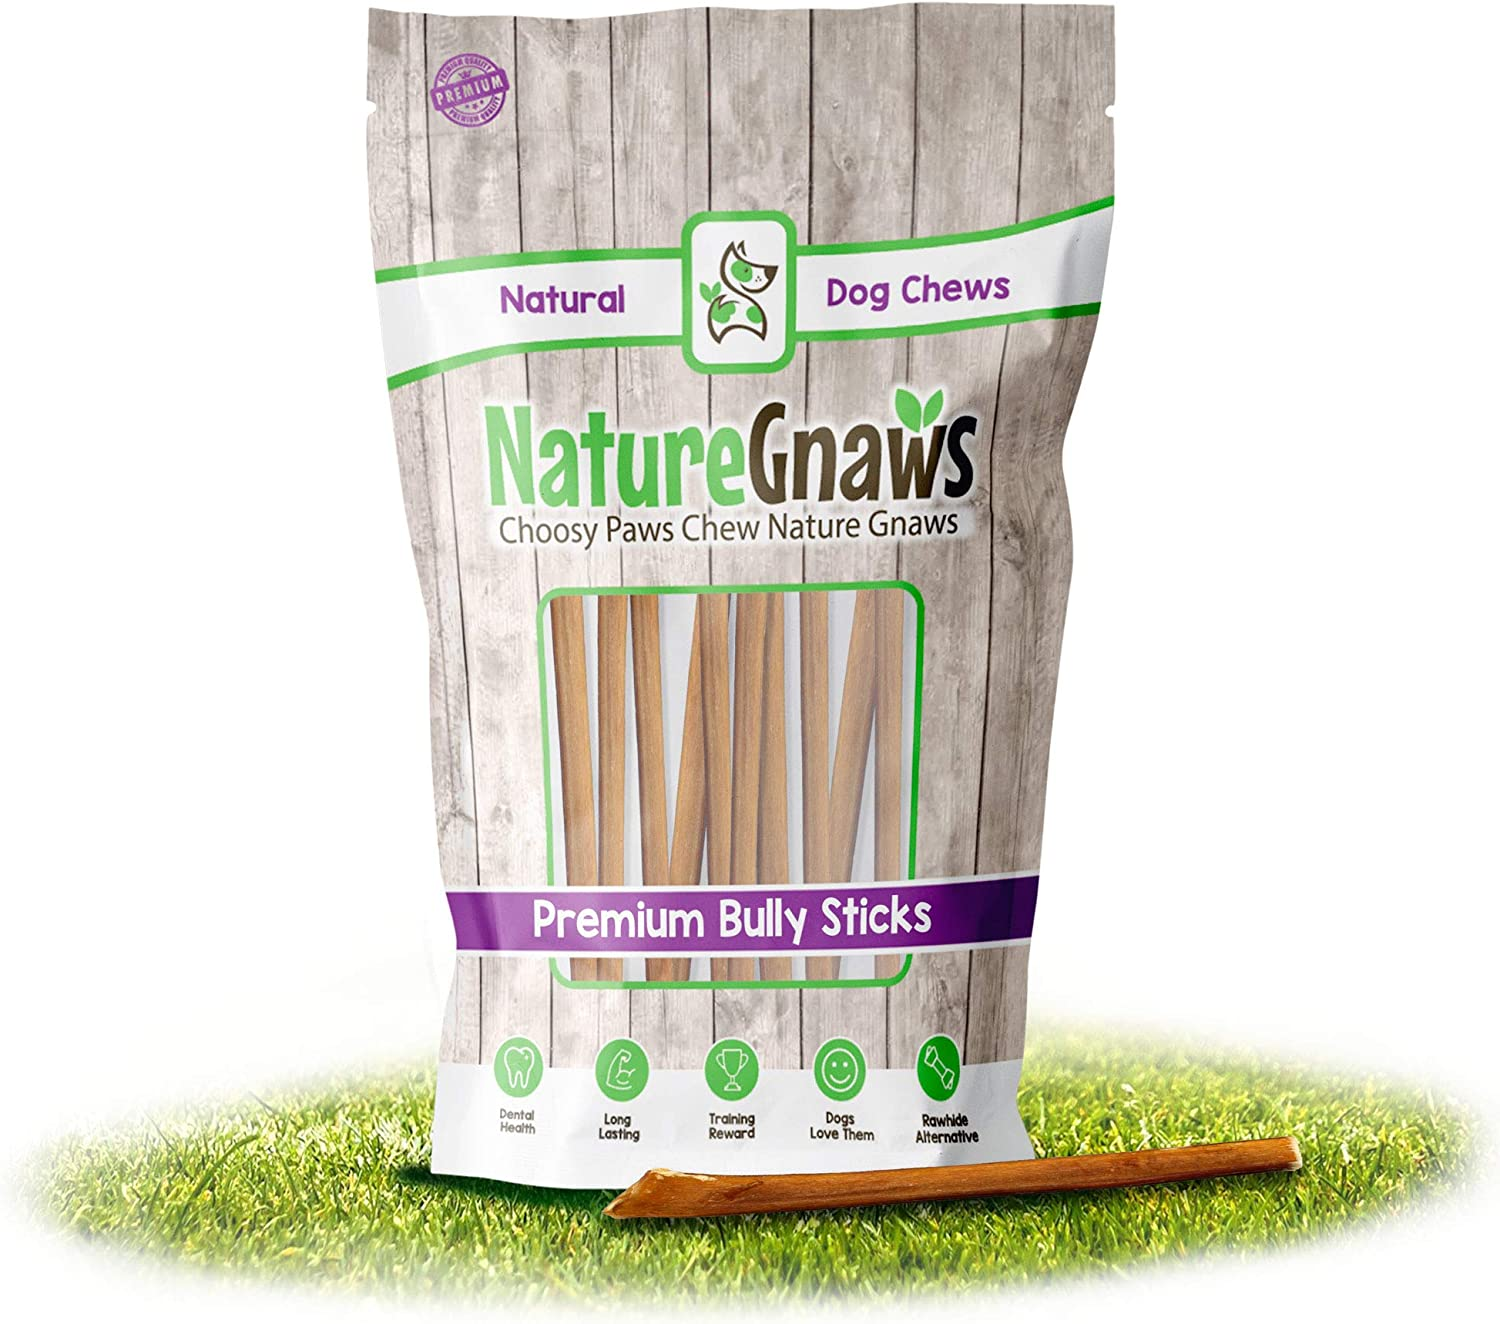 Nature Gnaws Extra Thin Bully Sticks for Dogs - Premium Natural Beef Bones - Long Lasting Dog Chew Treats for Small Dogs & Puppies - Rawhide Free - 6 Inch